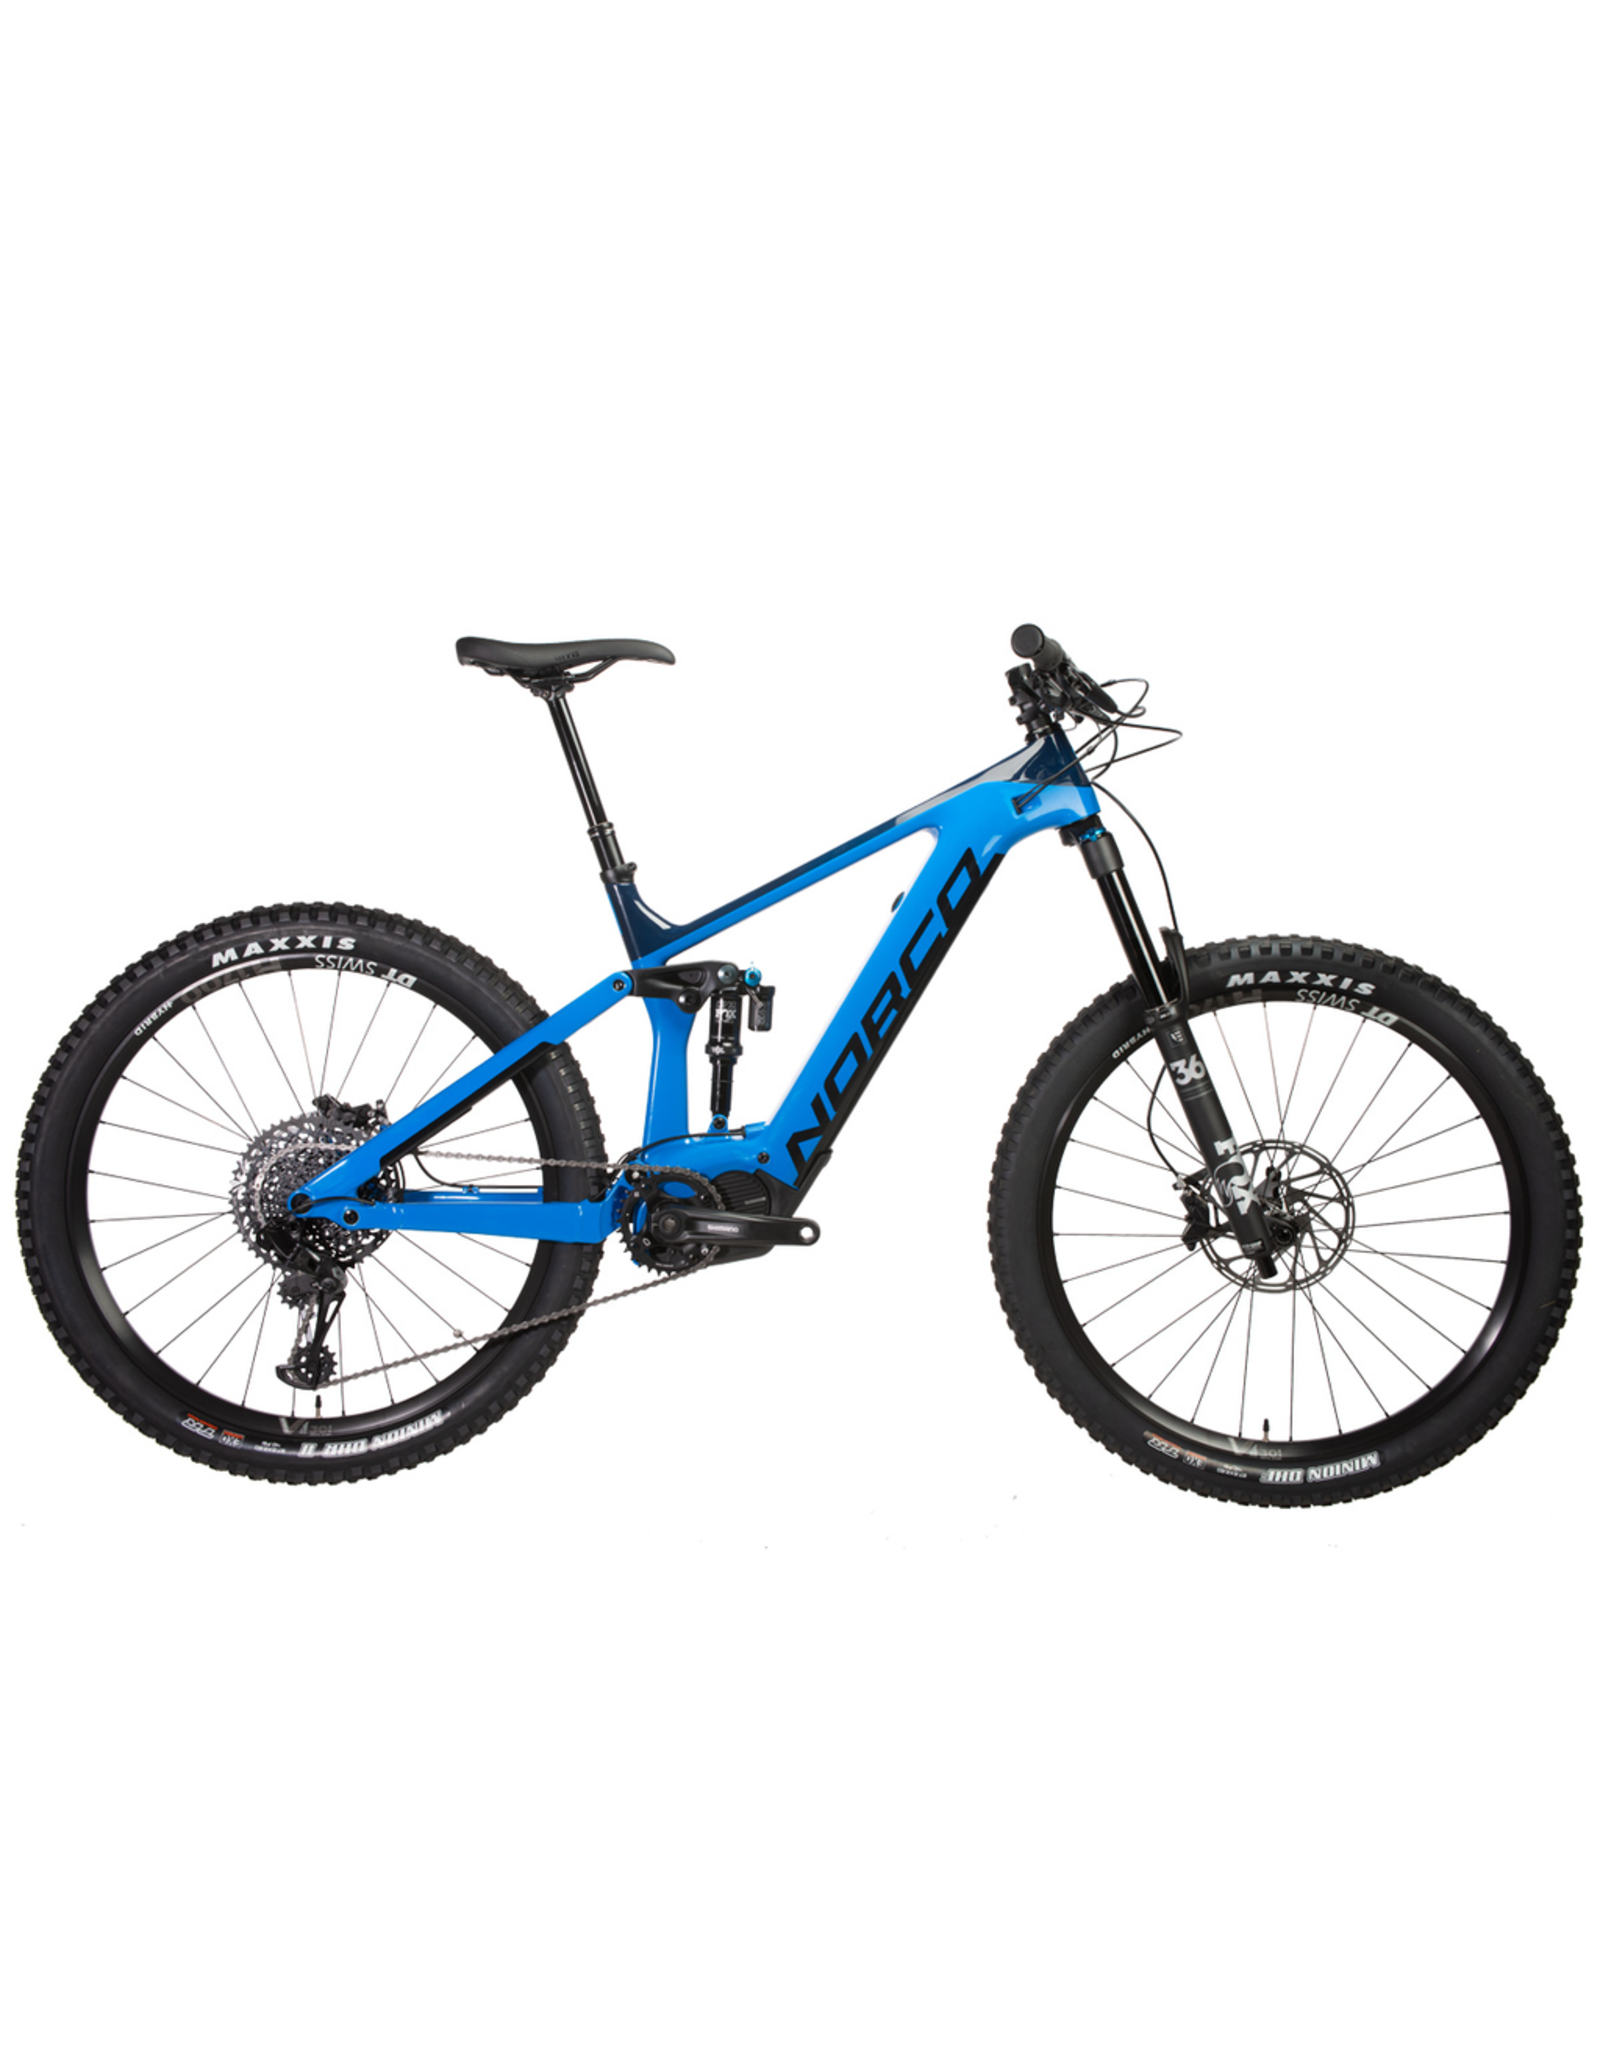 NORCO NORCO SIGHT VLT GX (27) BLUE (E-BIKE)